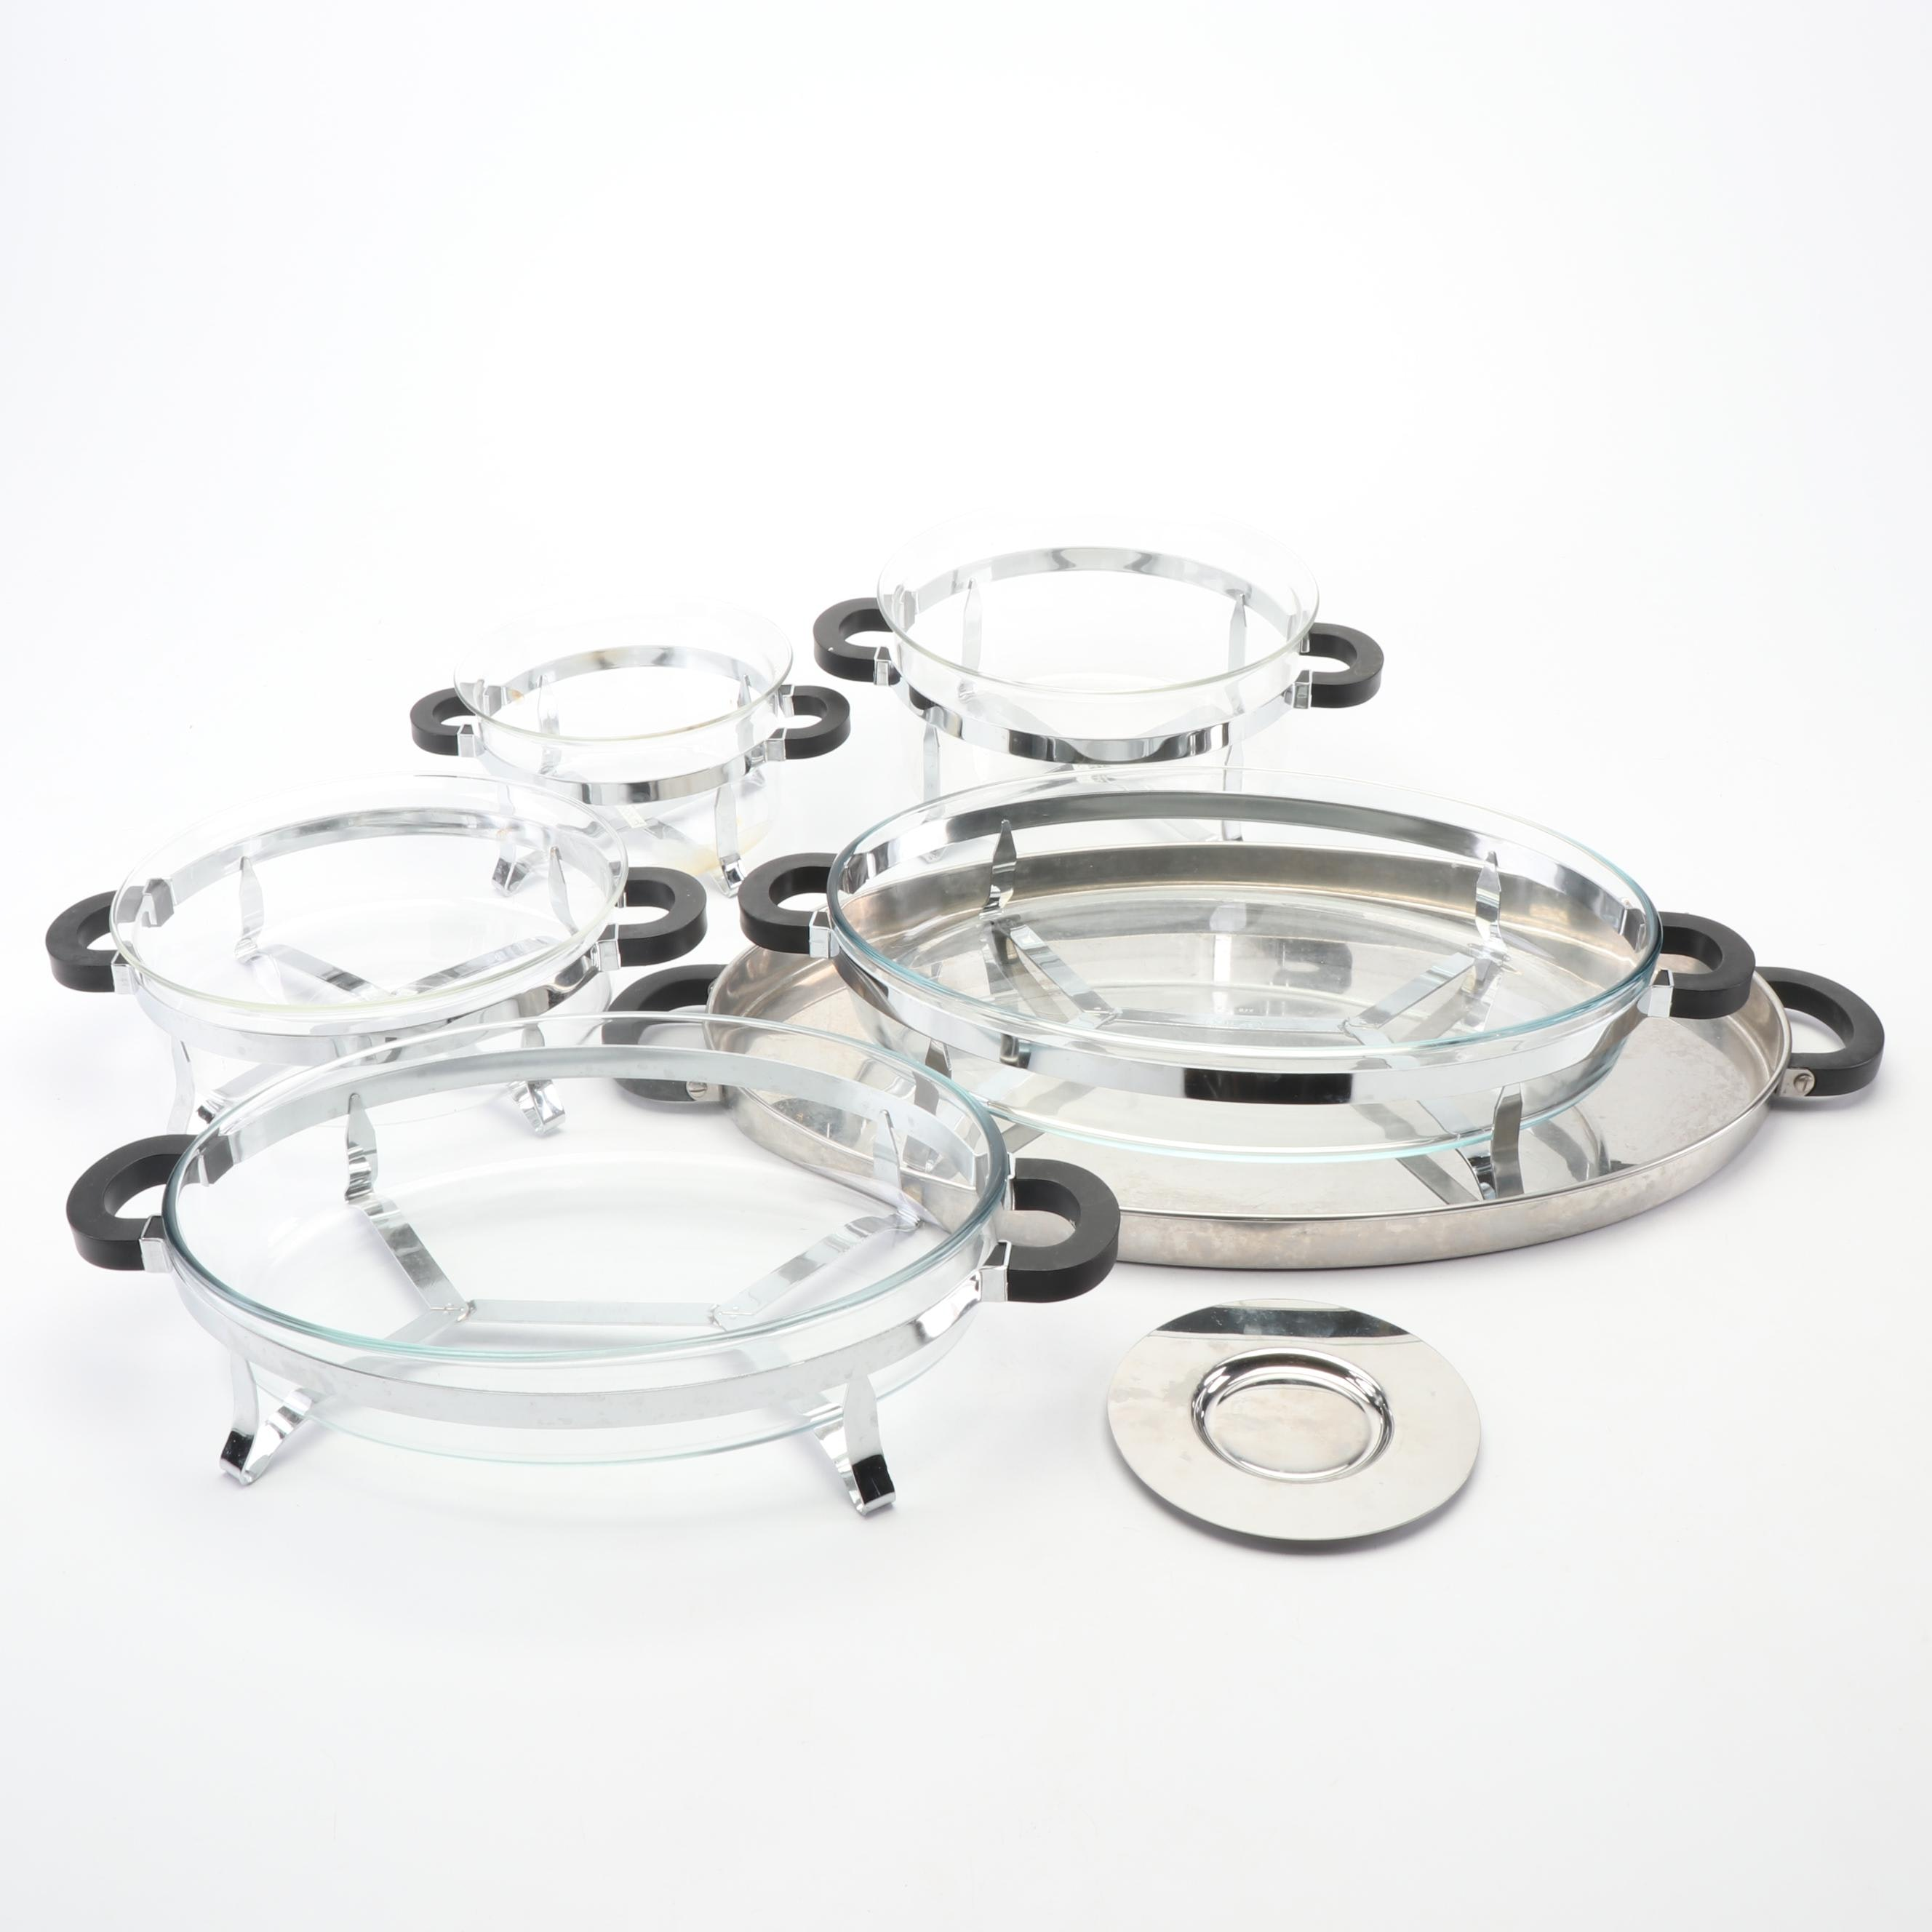 Bodum and Pyrex Stainless Steel and Glass Serveware